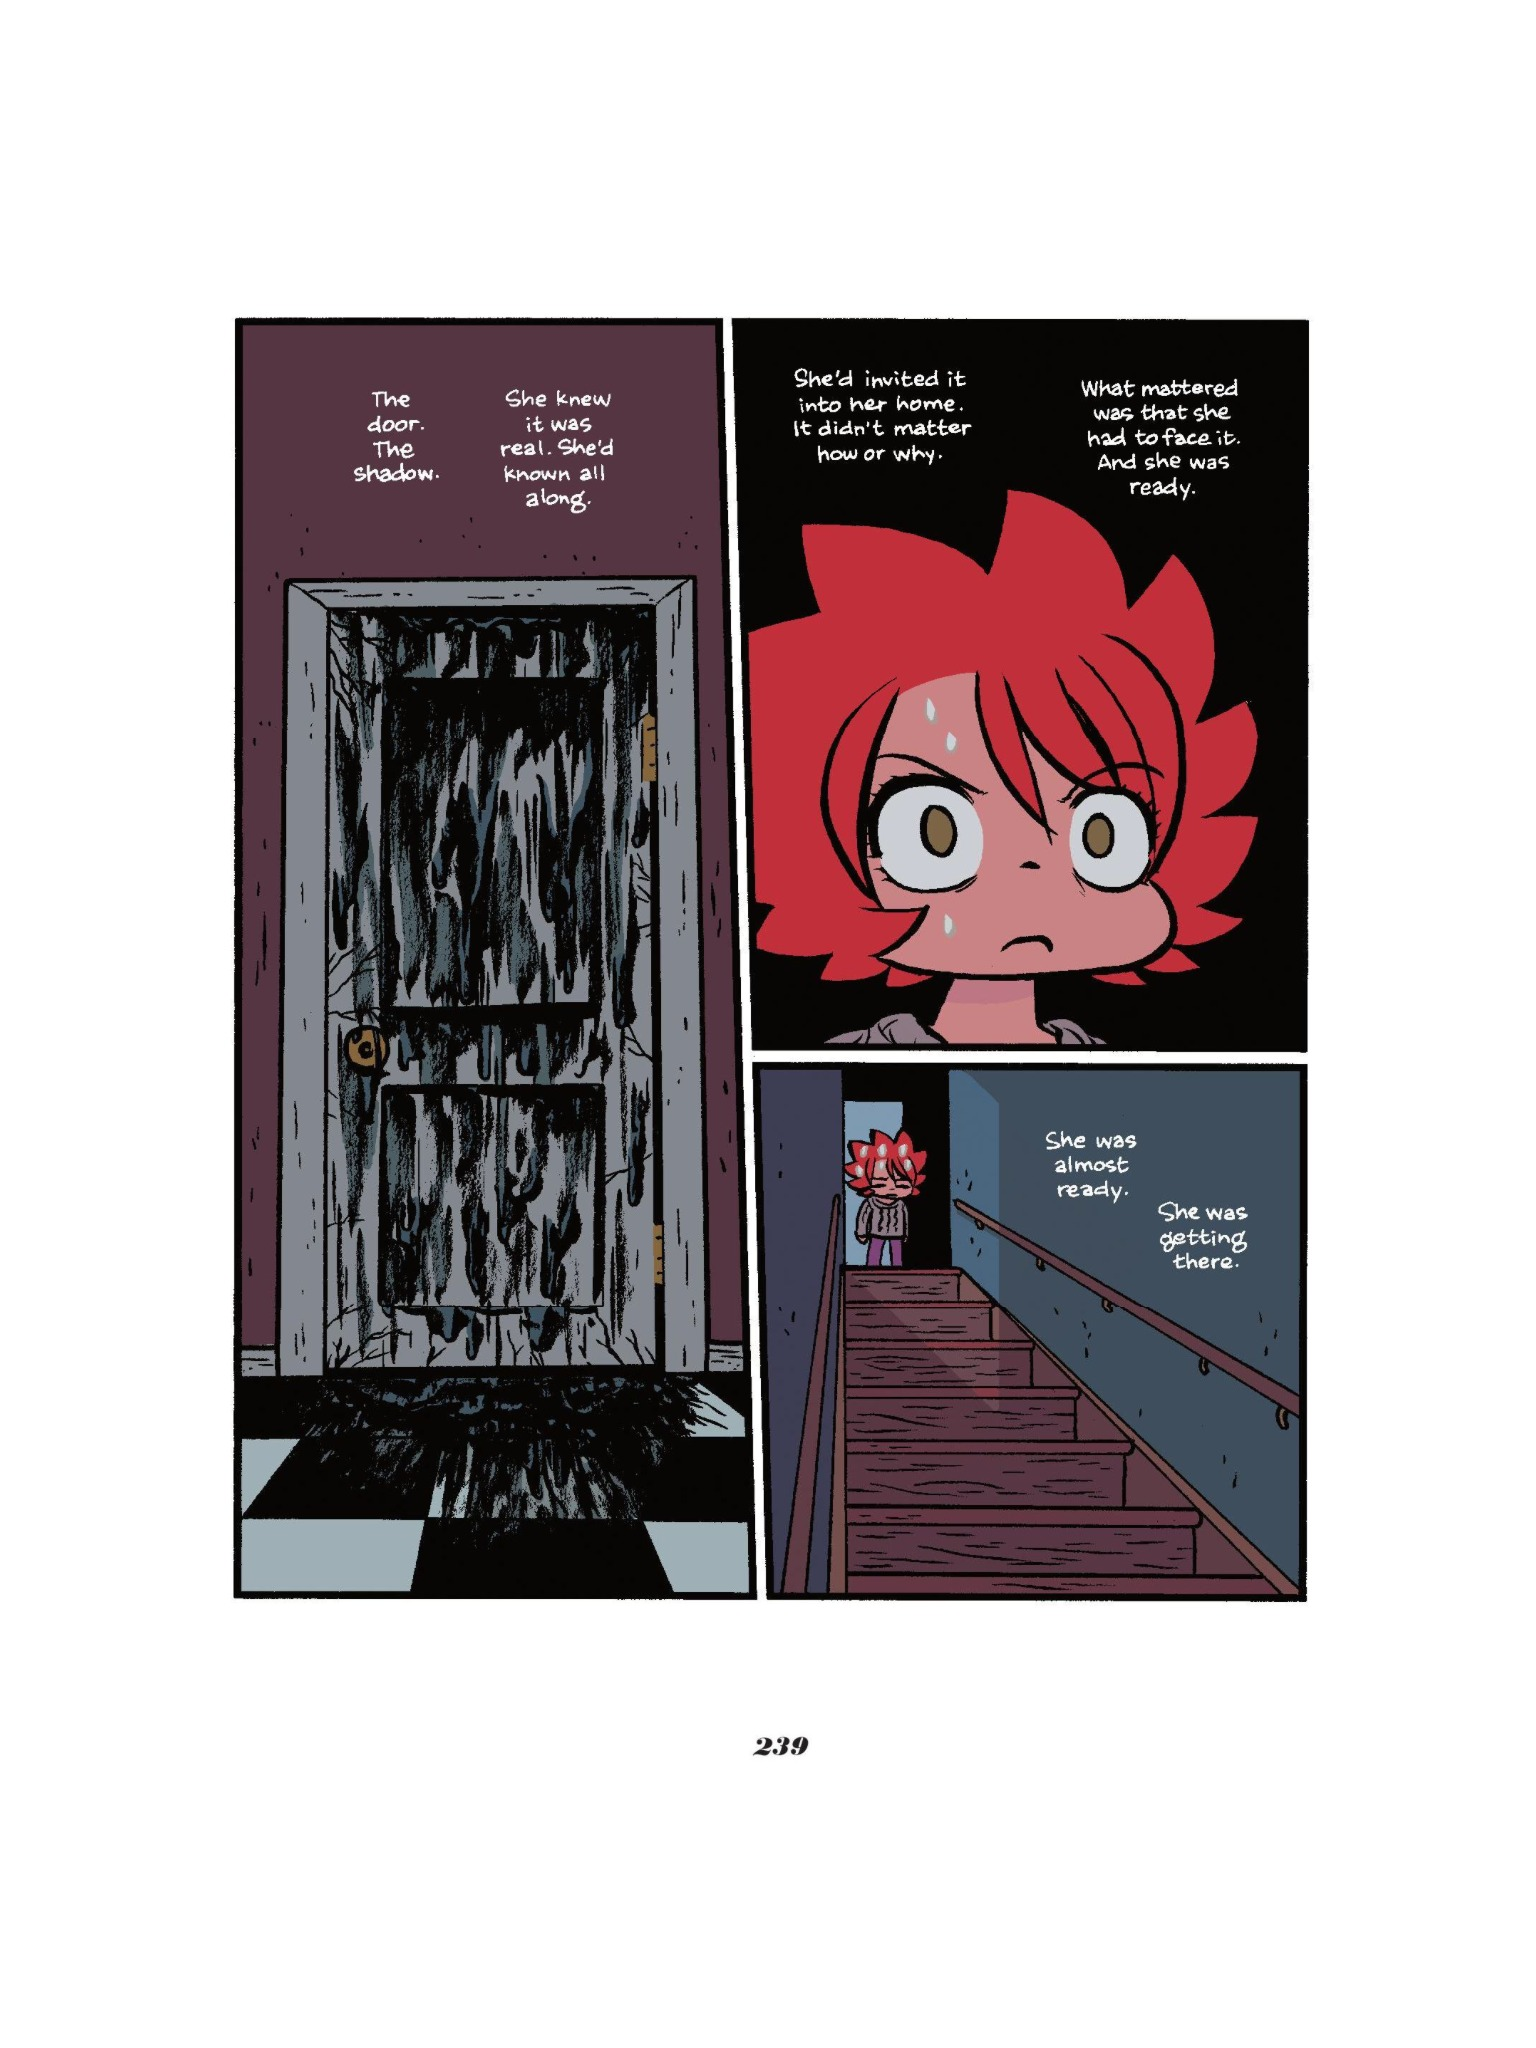 Read online Seconds comic -  Issue # Full - 239